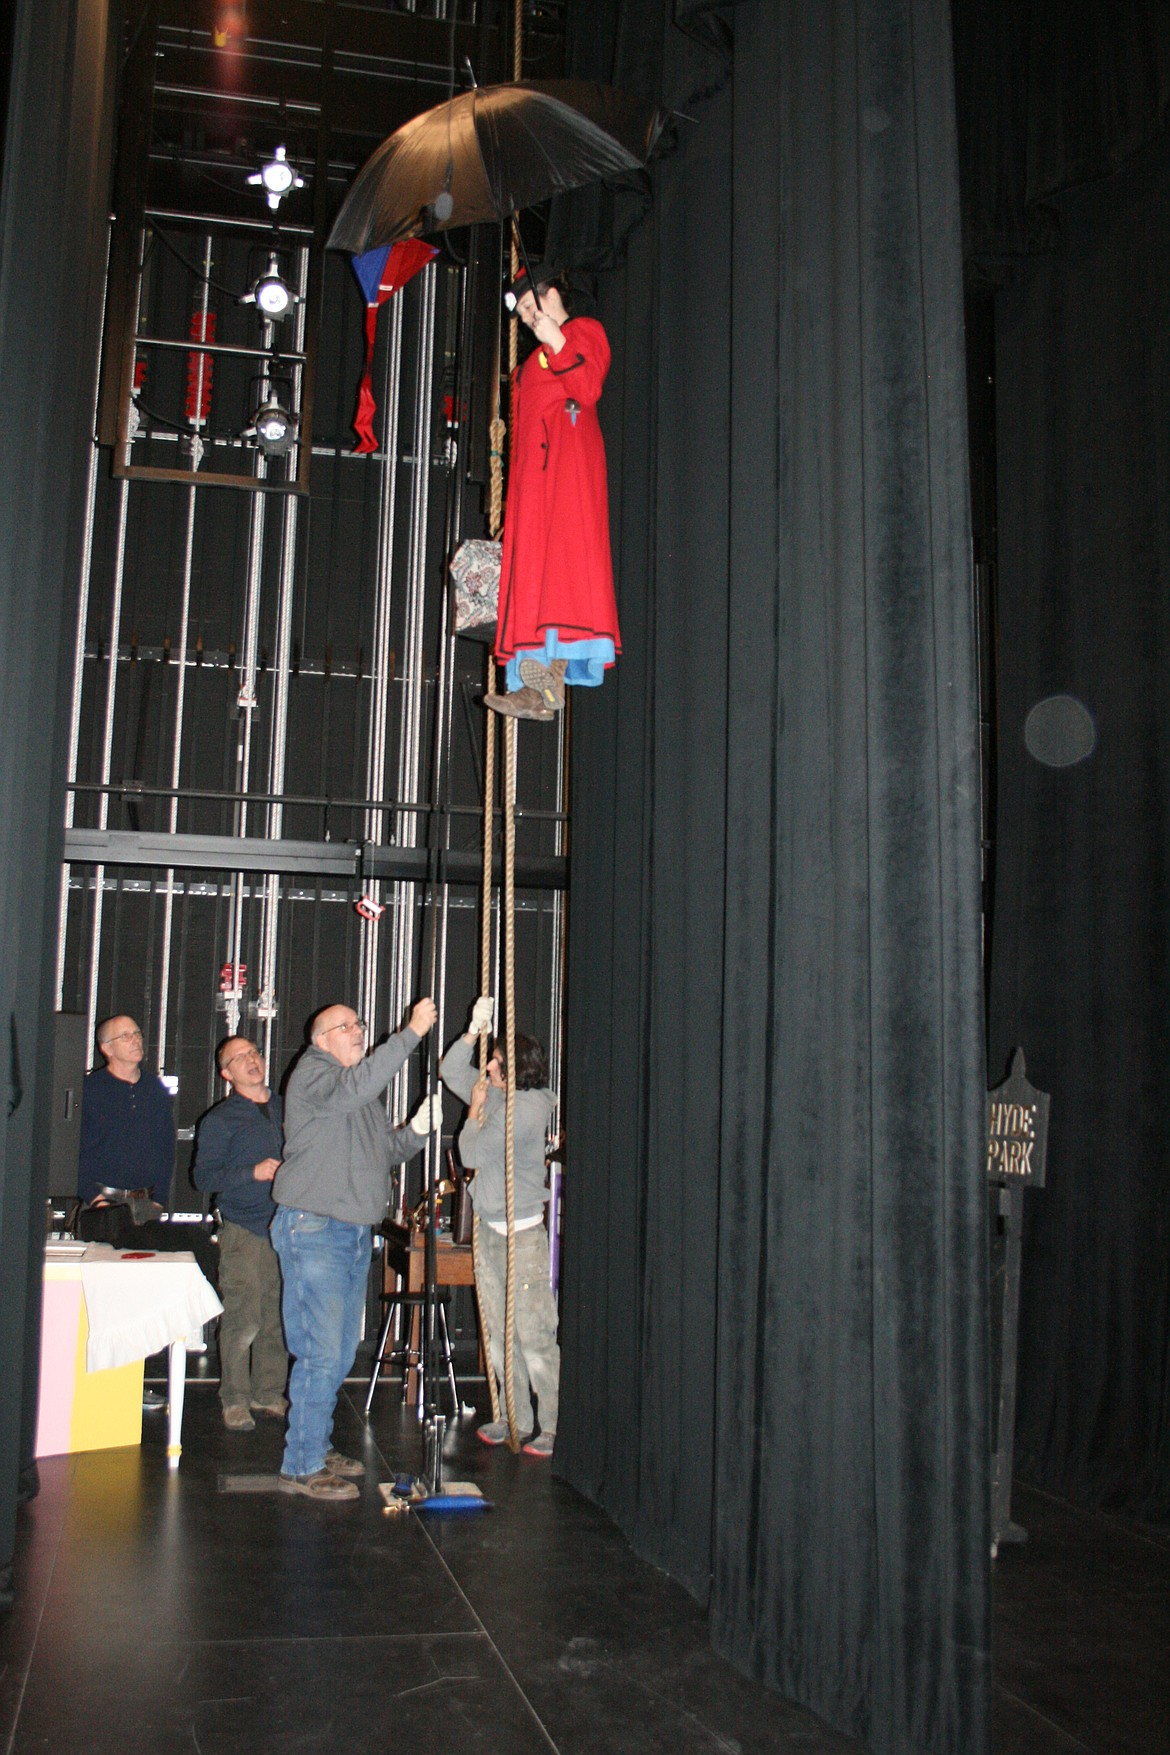 Quincy Valley Allied Arts stage crew members hoist Mary Poppins (Stephanie Moore) into the air. The company's production opens Feb. 20.